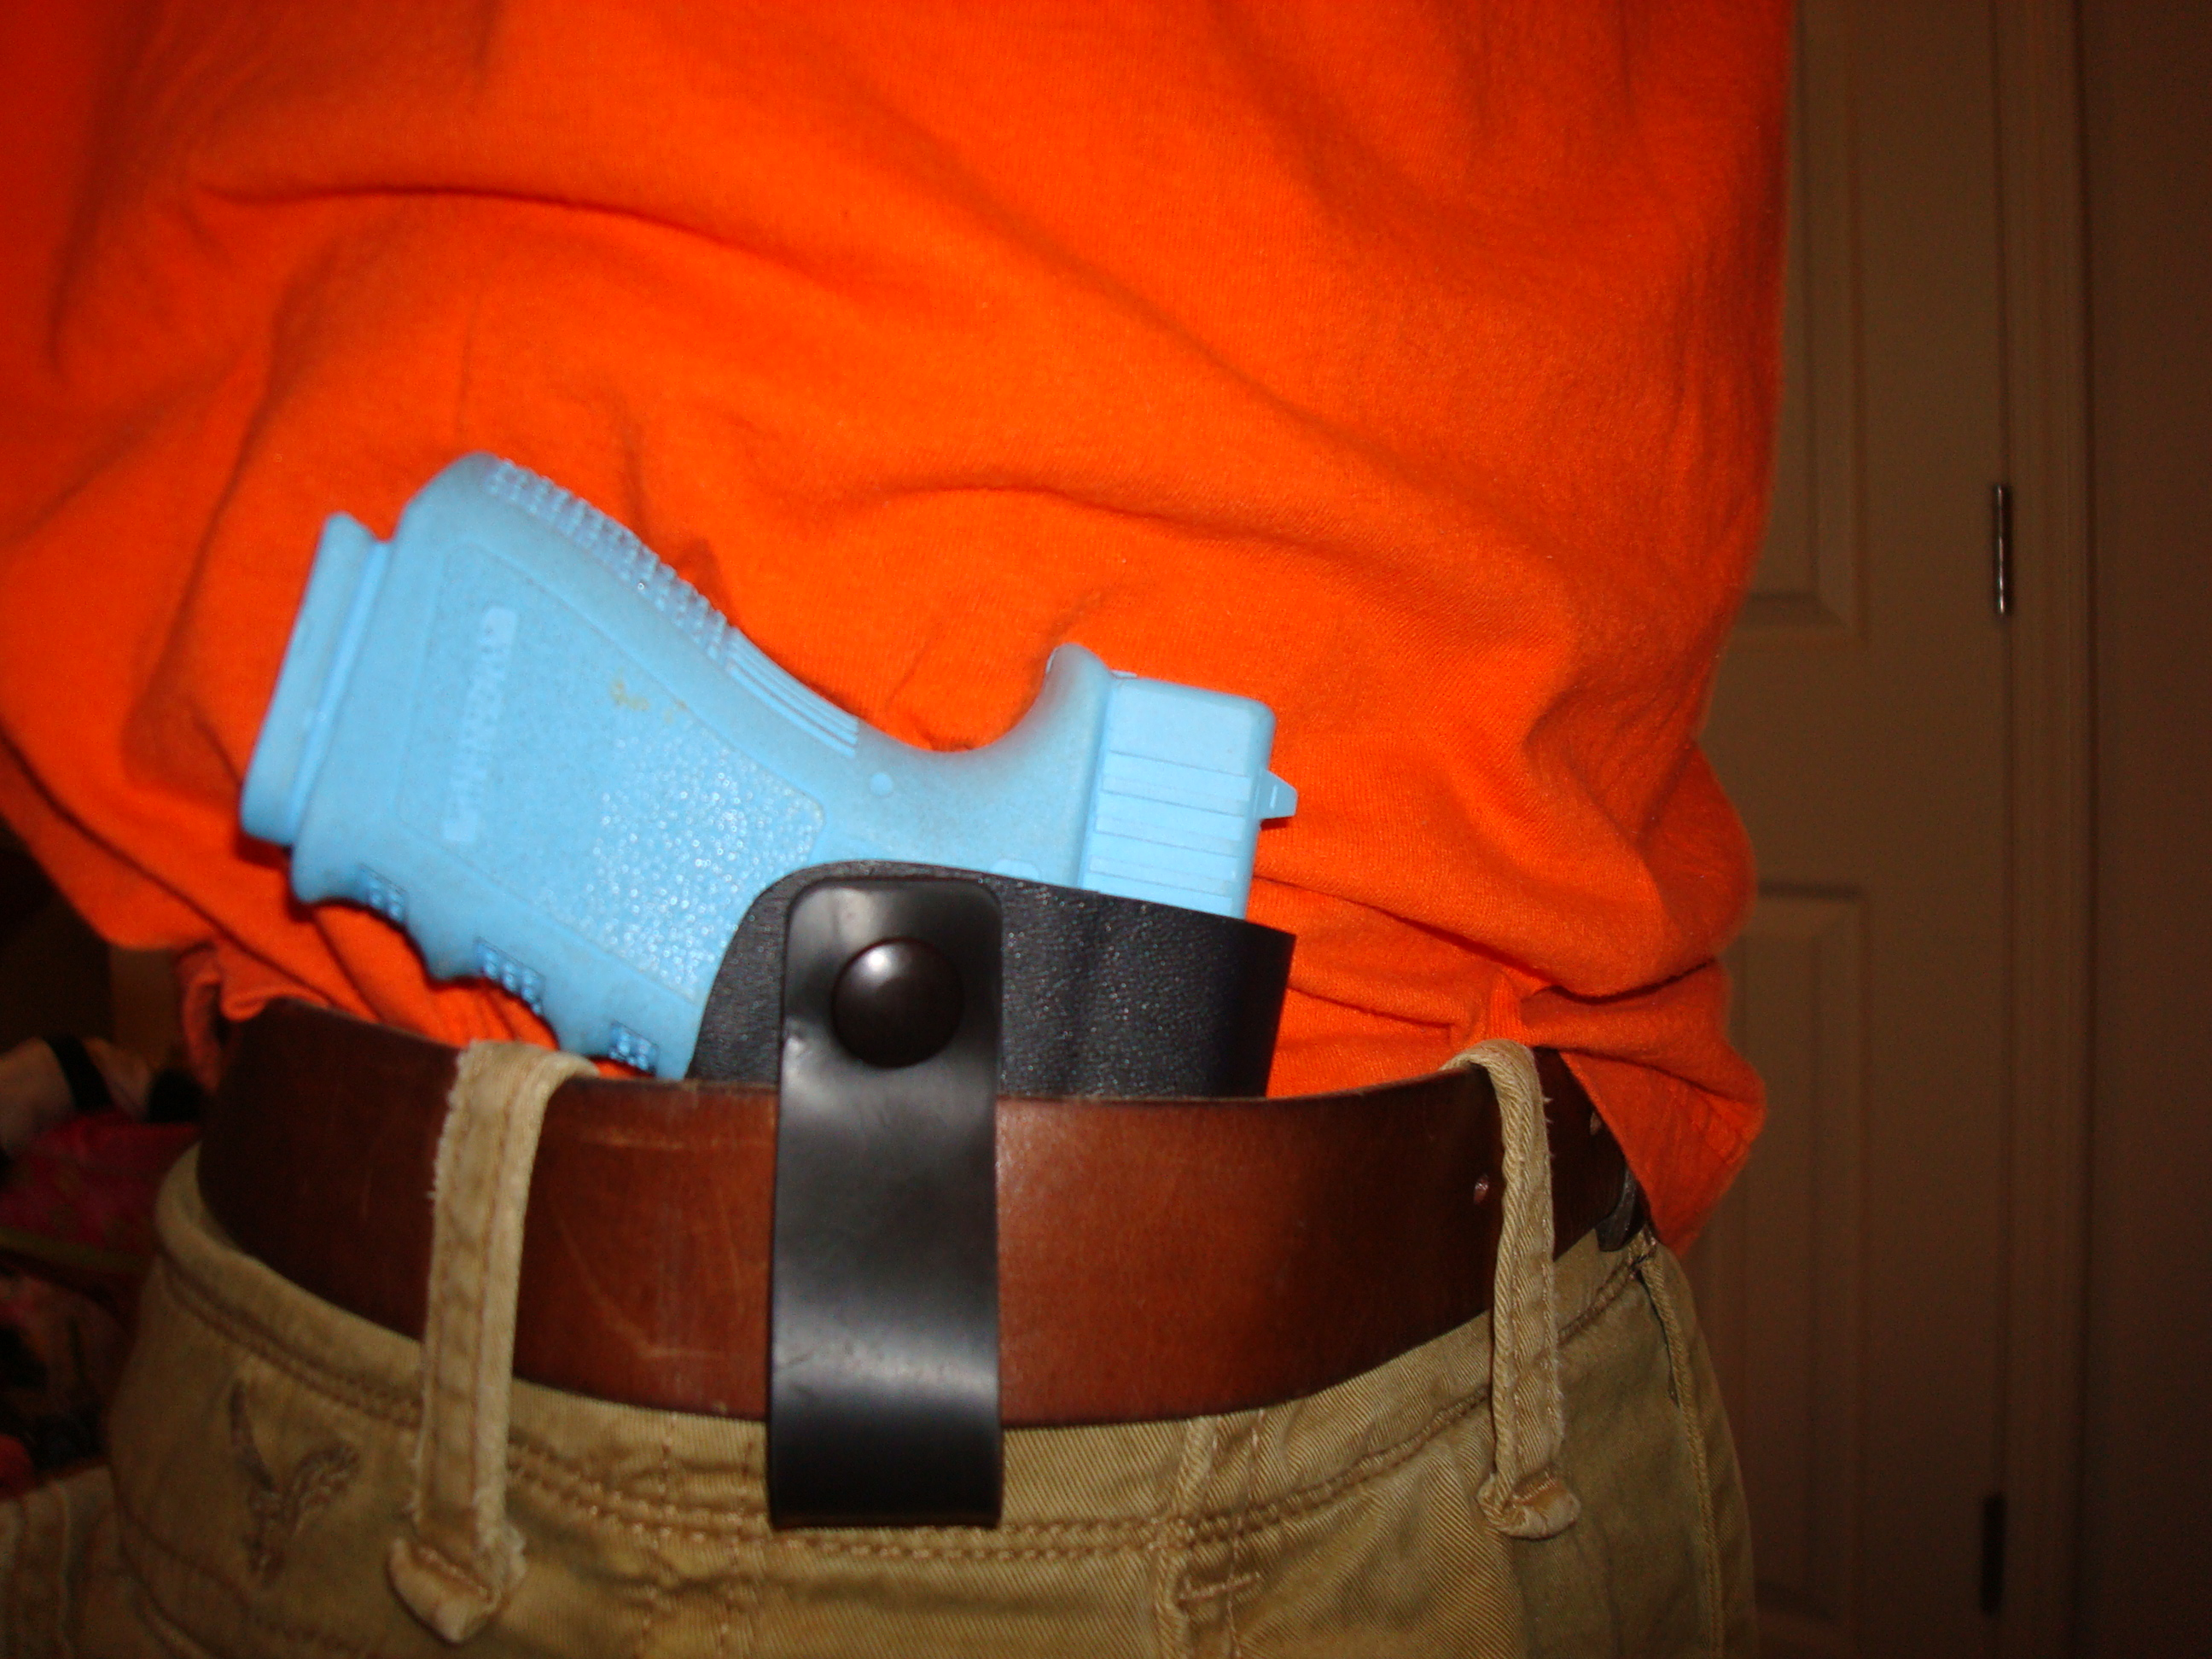 Custom kydex holsters!!-dsc02665.jpg